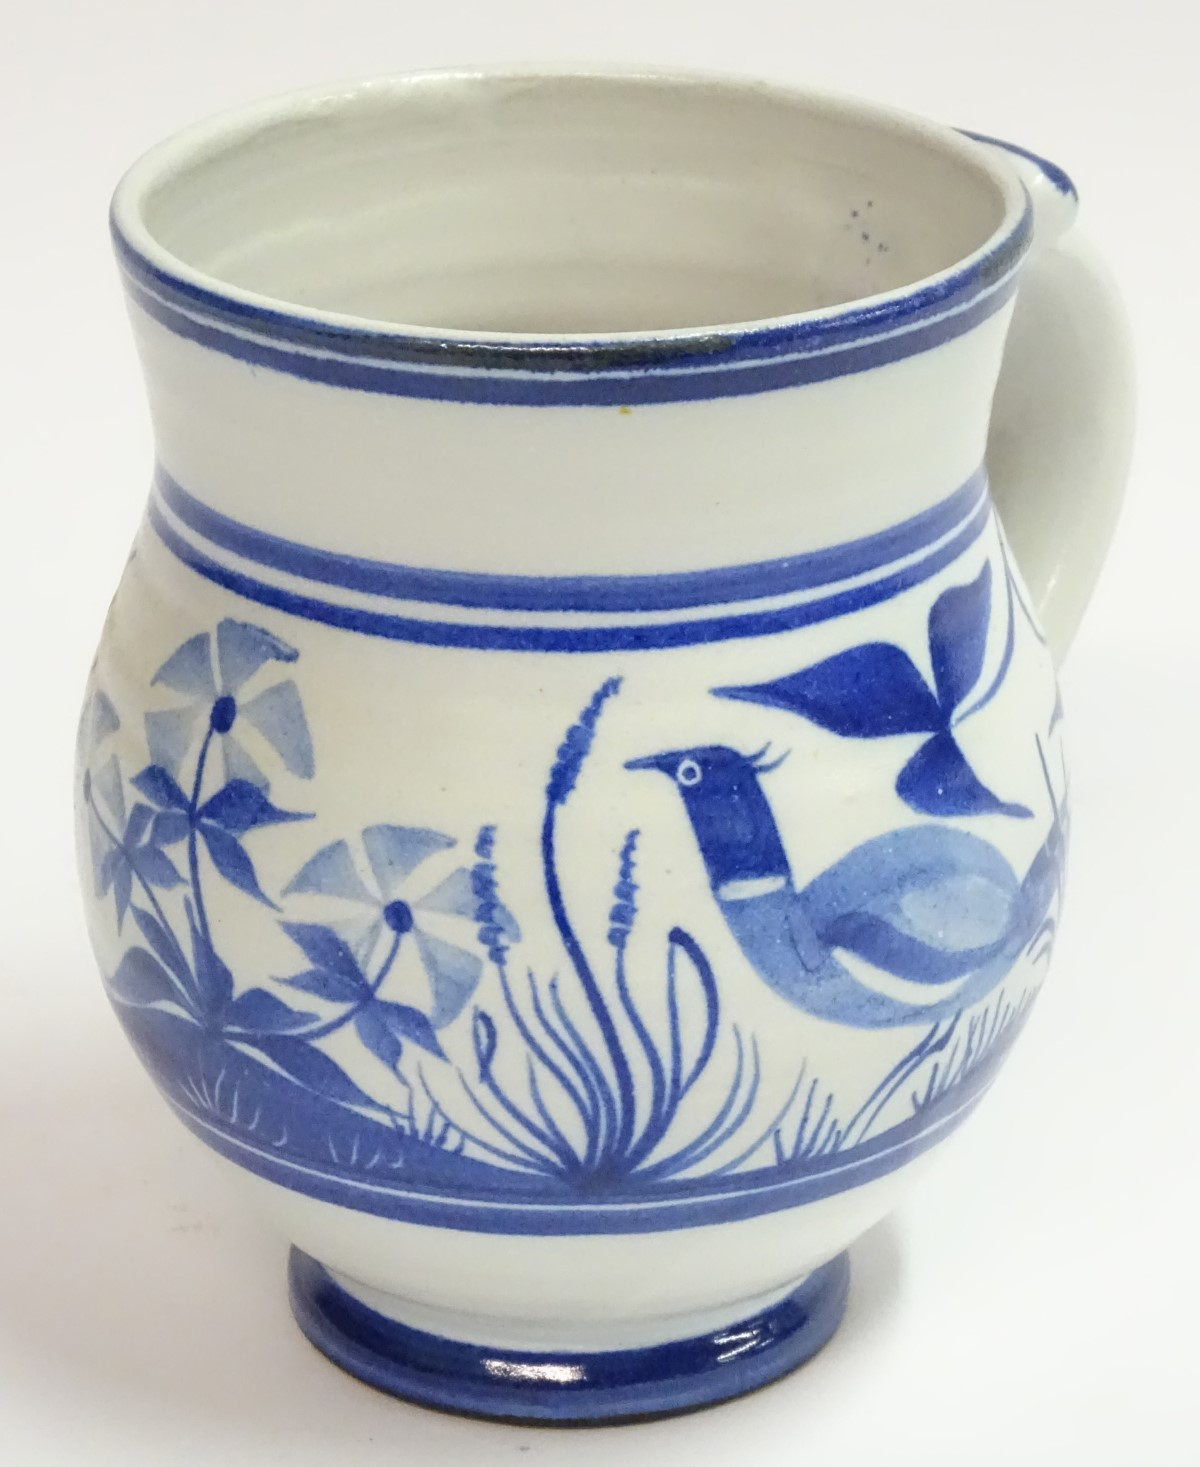 Lot 55 - A Laurence McGowan British studio pottery vase with a single handle,